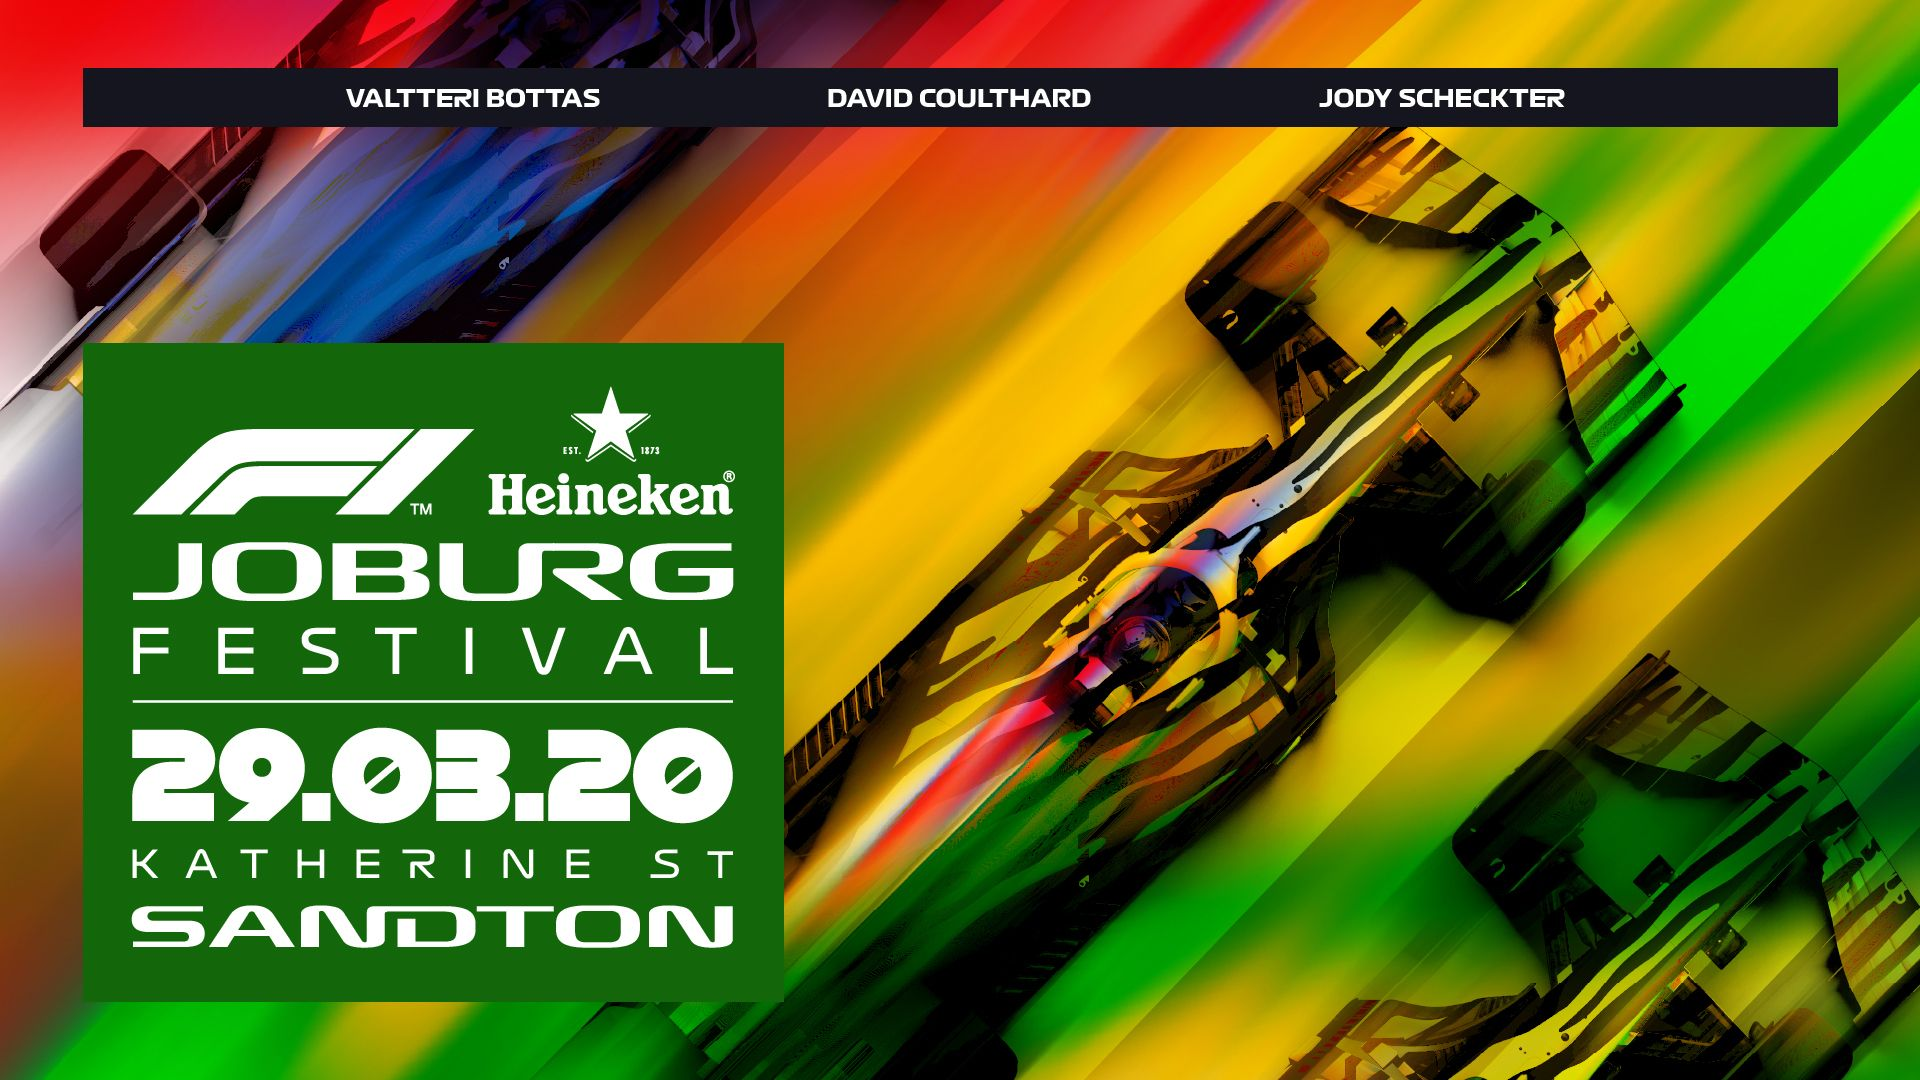 F1 and Heineken to bring spectacle of racing back to South Africa with Joburg festival | Formula 1®